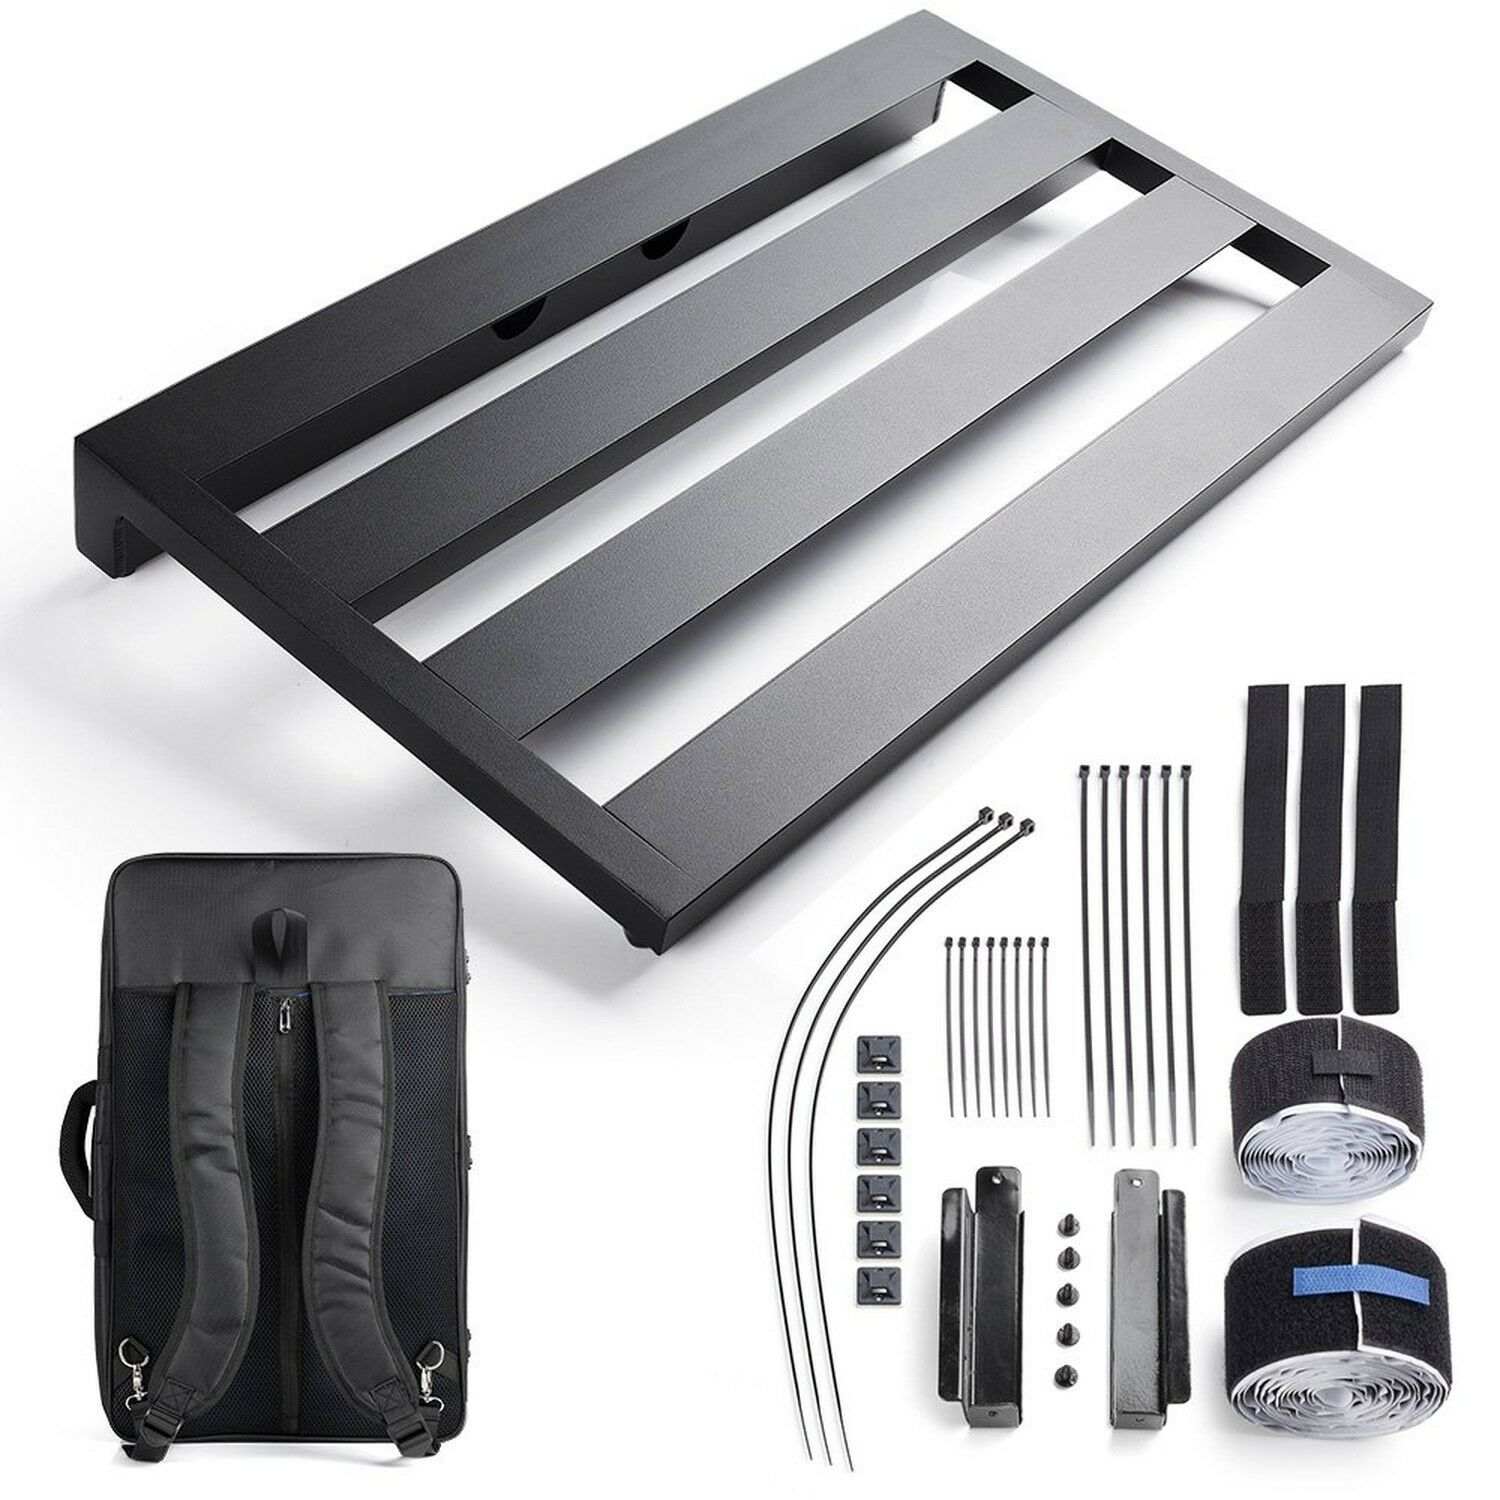 """Vangoa- Aluminum Guitar Pedal Board 22"""" x 12.6"""" x 2.36"""" with Carry Bag and Po..."""